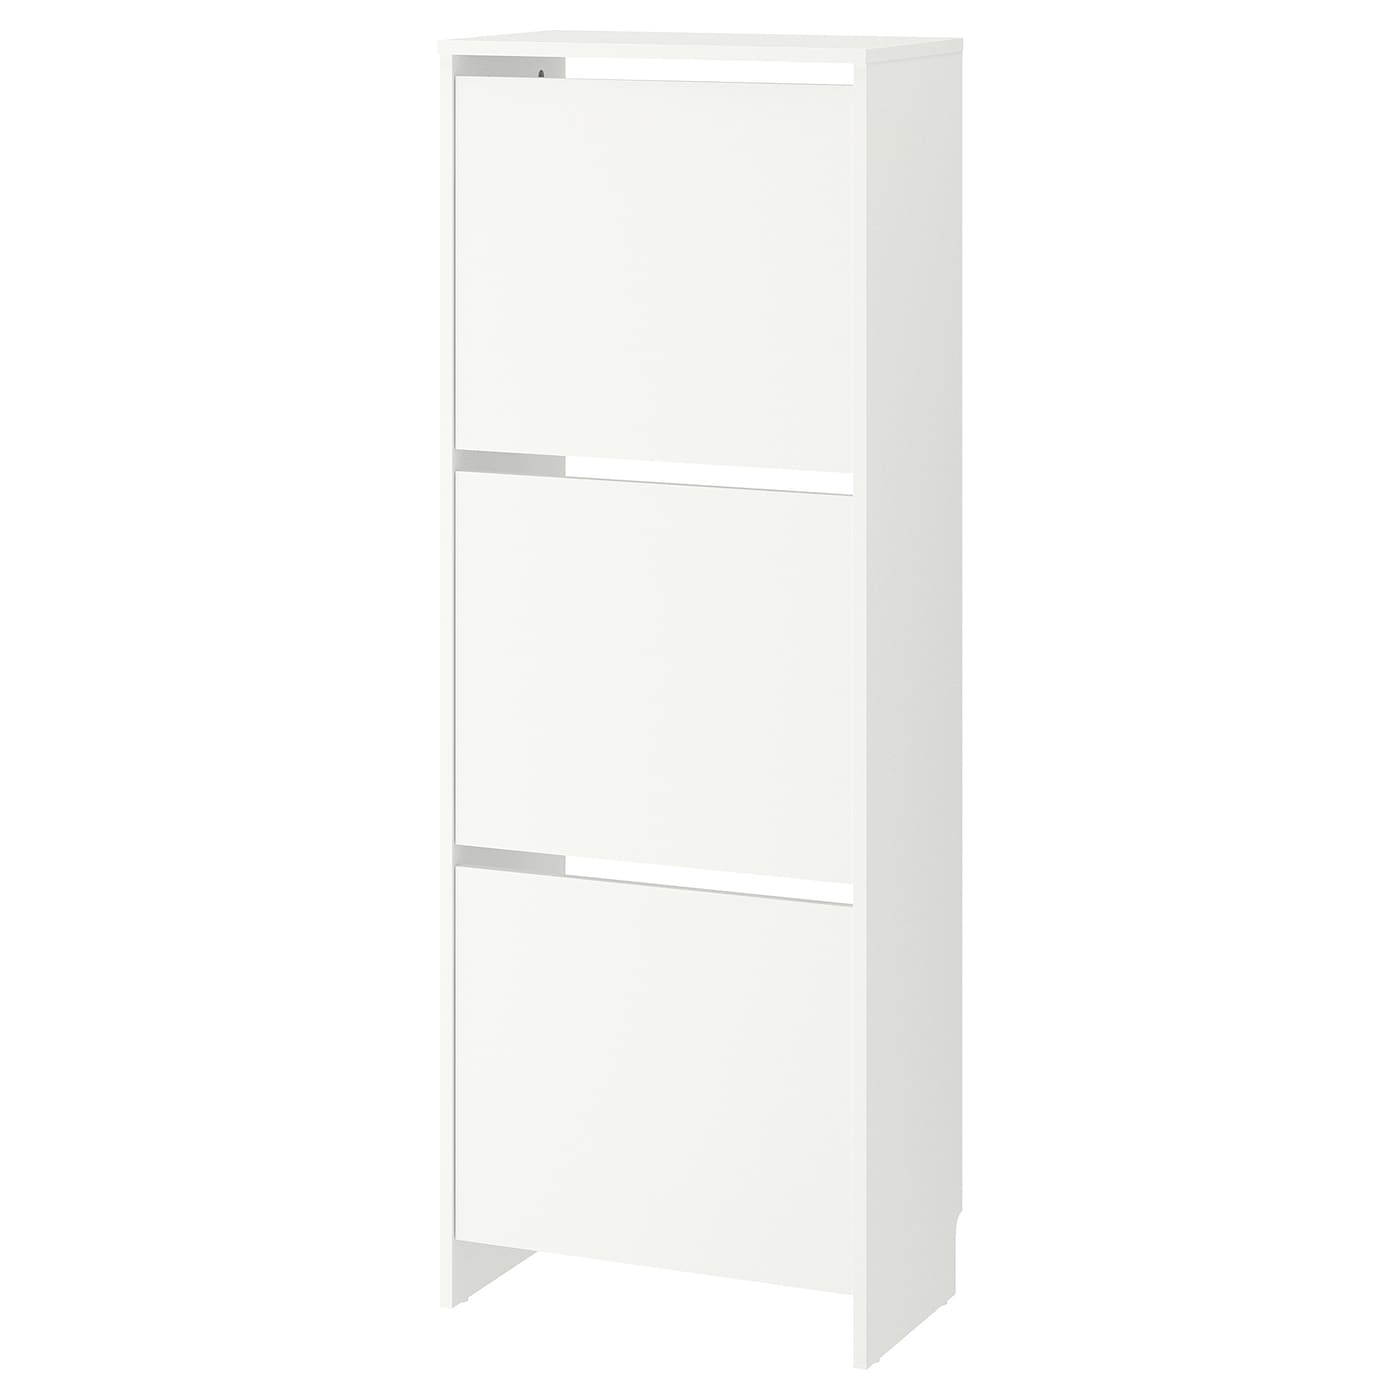 IKEA BISSA shoe cabinet with 3 compartments